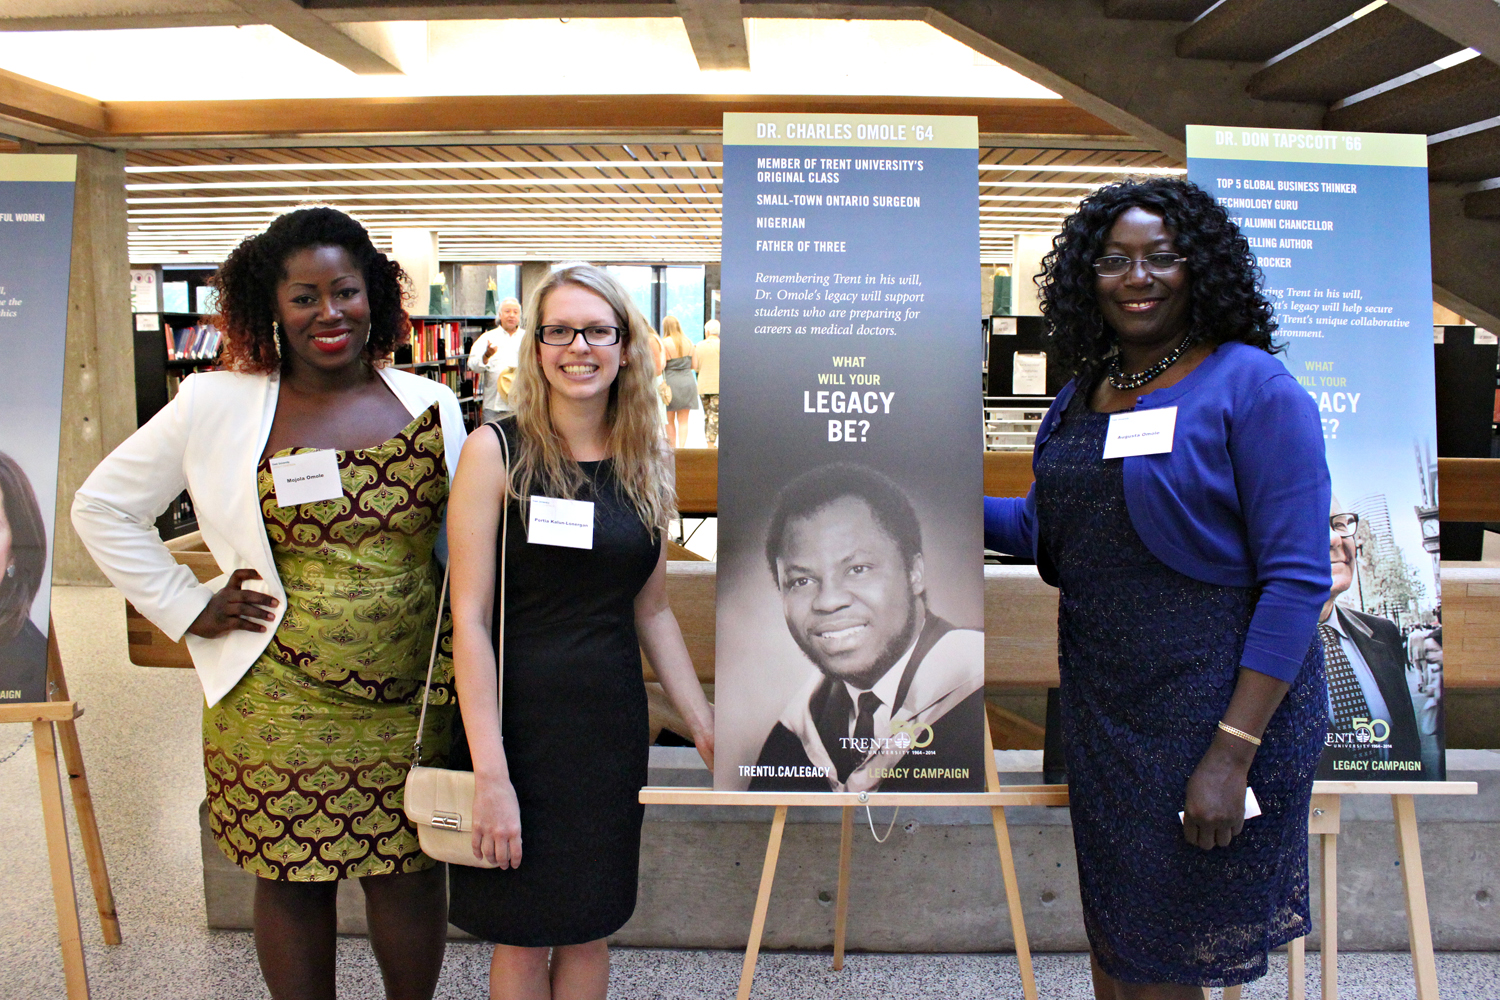 Three women at the Legacy Campaign Event